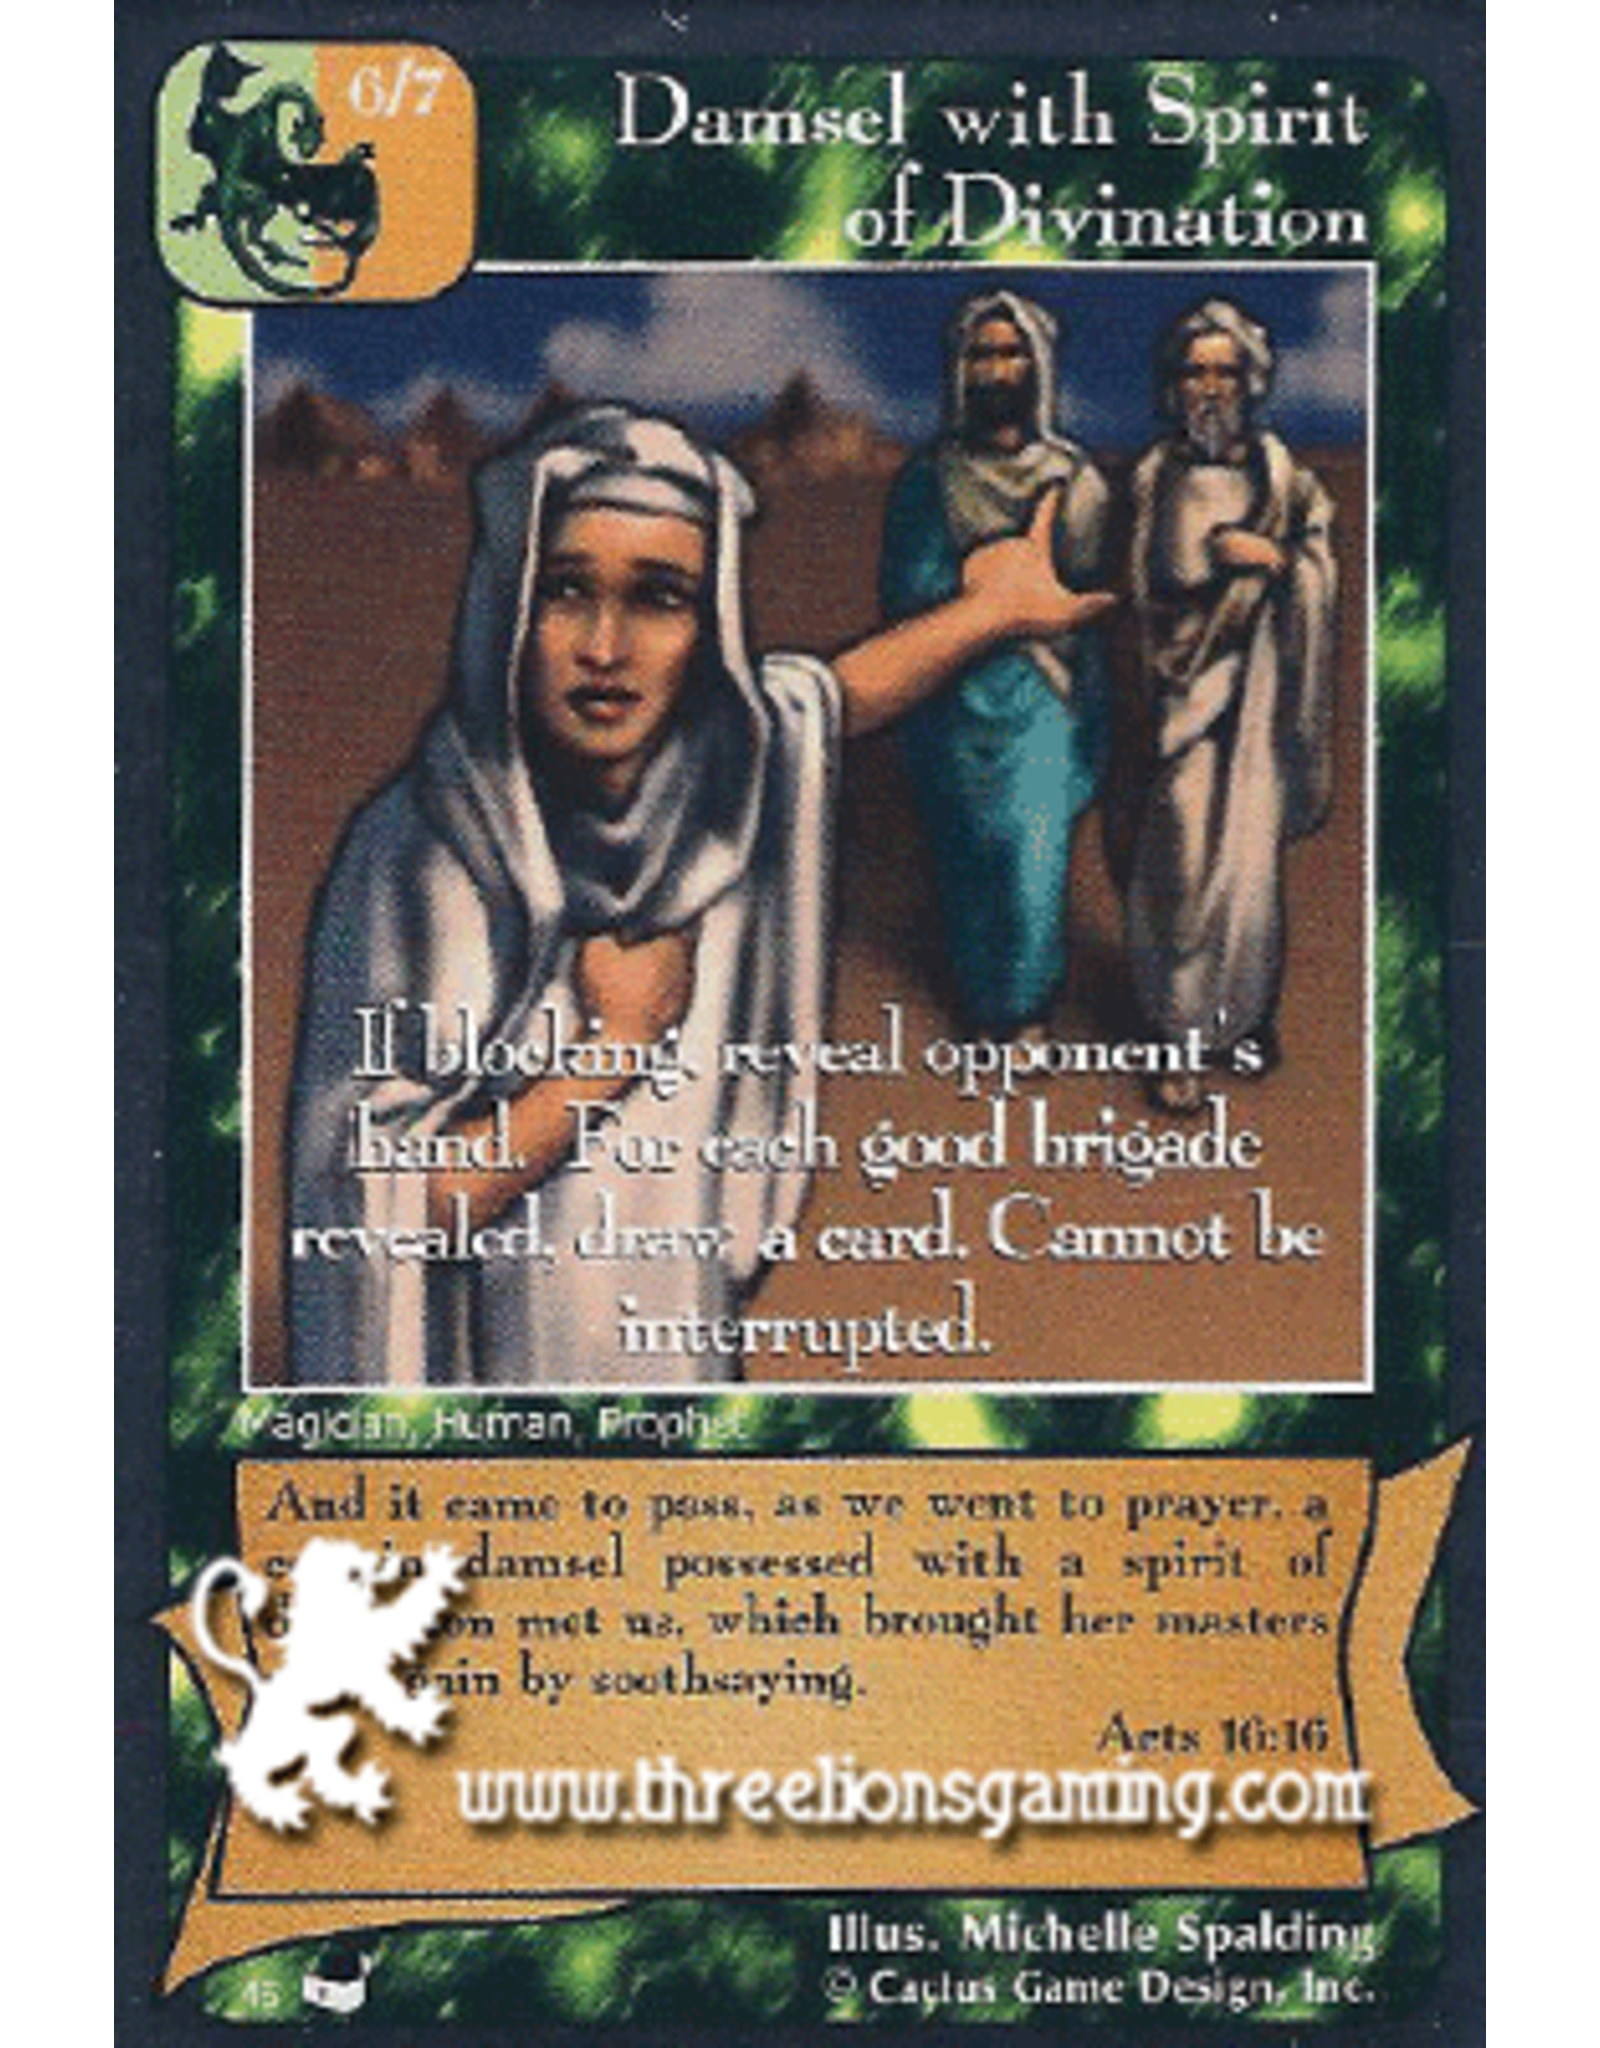 TexP: Damsel with Spirit of Divination